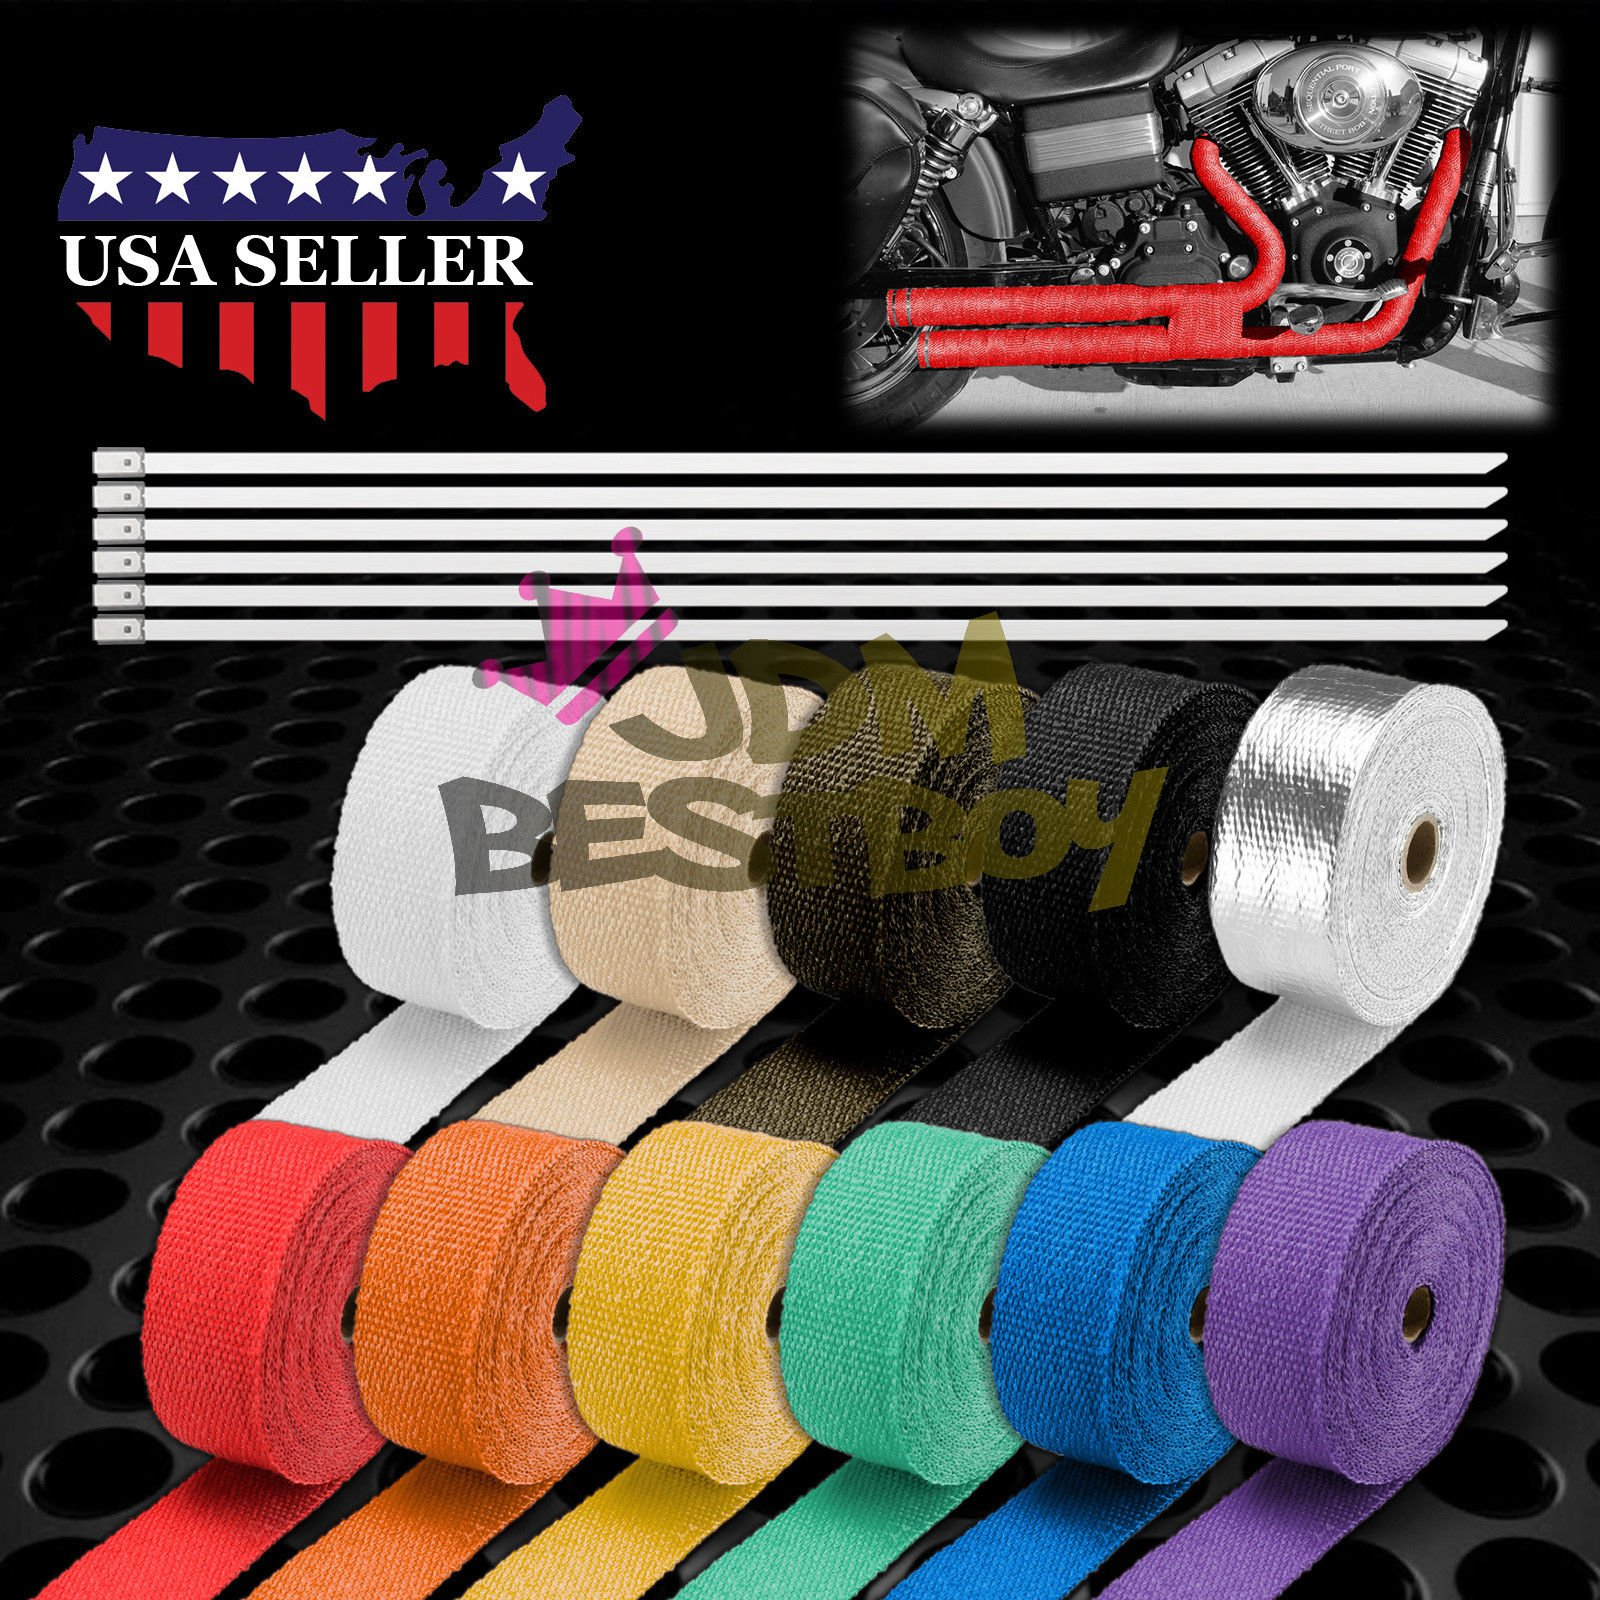 Titanium Exhaust Pipe Insulation Thermal Heat Wrap 2'' x 50' Car Motorcycle Header Protection Fiberglass Heat Shield 6x Stainless Ties